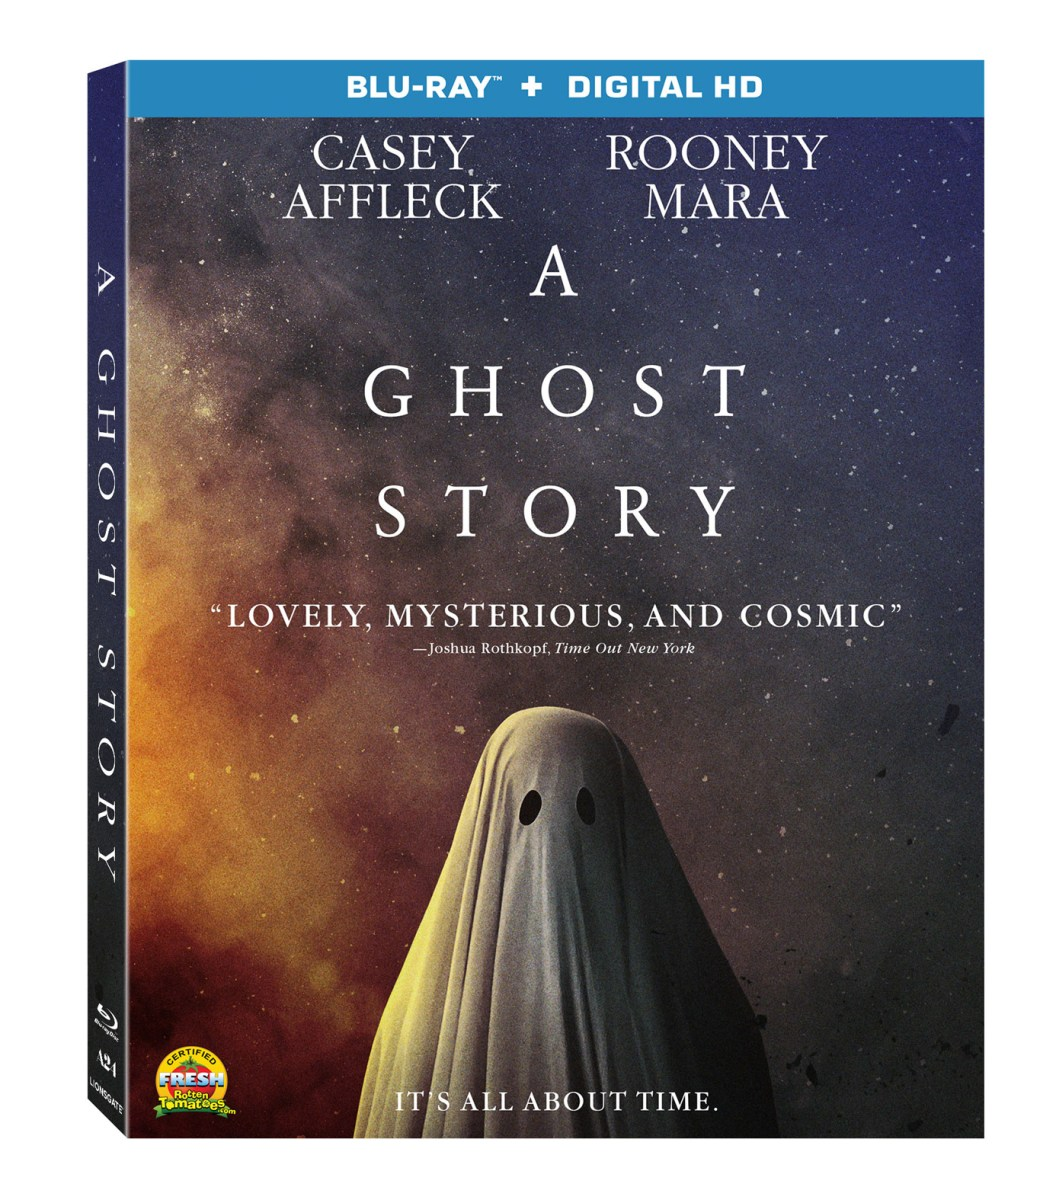 A Ghost Story Digital HD Winner